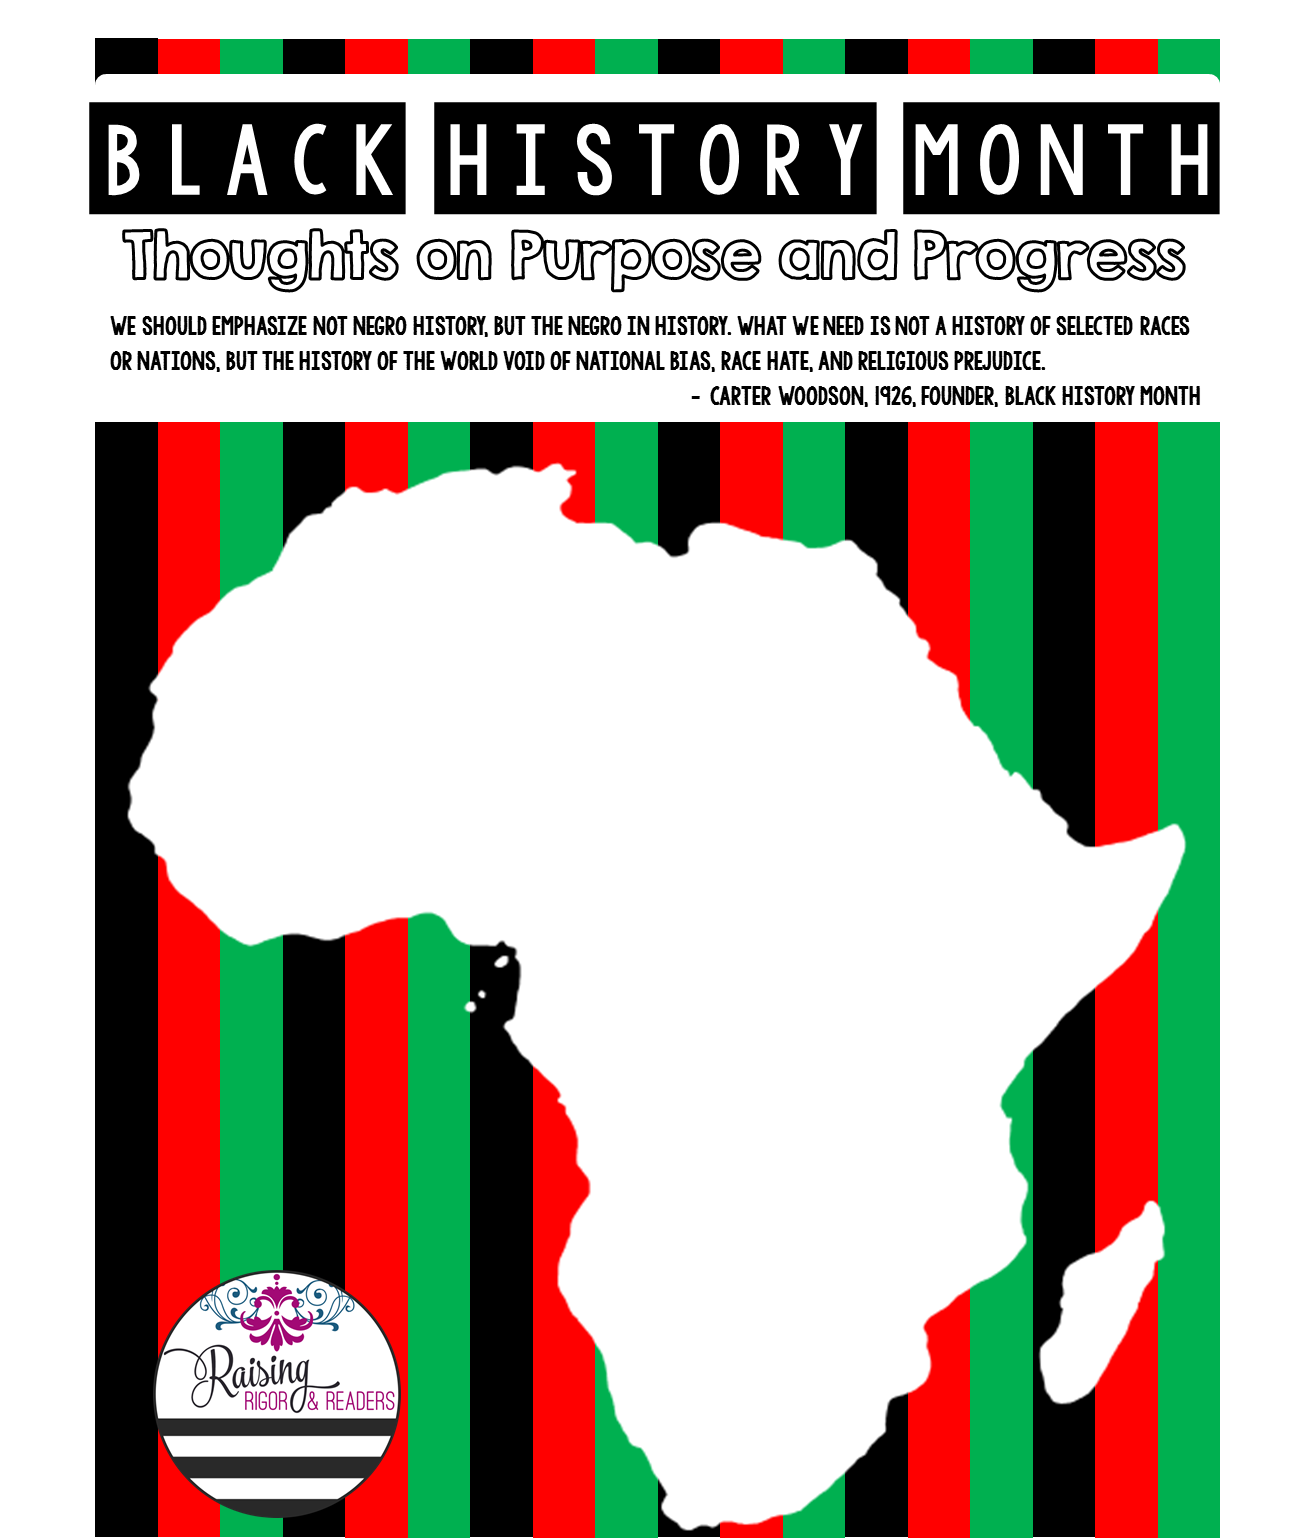 Raising Rigor And Readers Black History Month Purpose And Progress